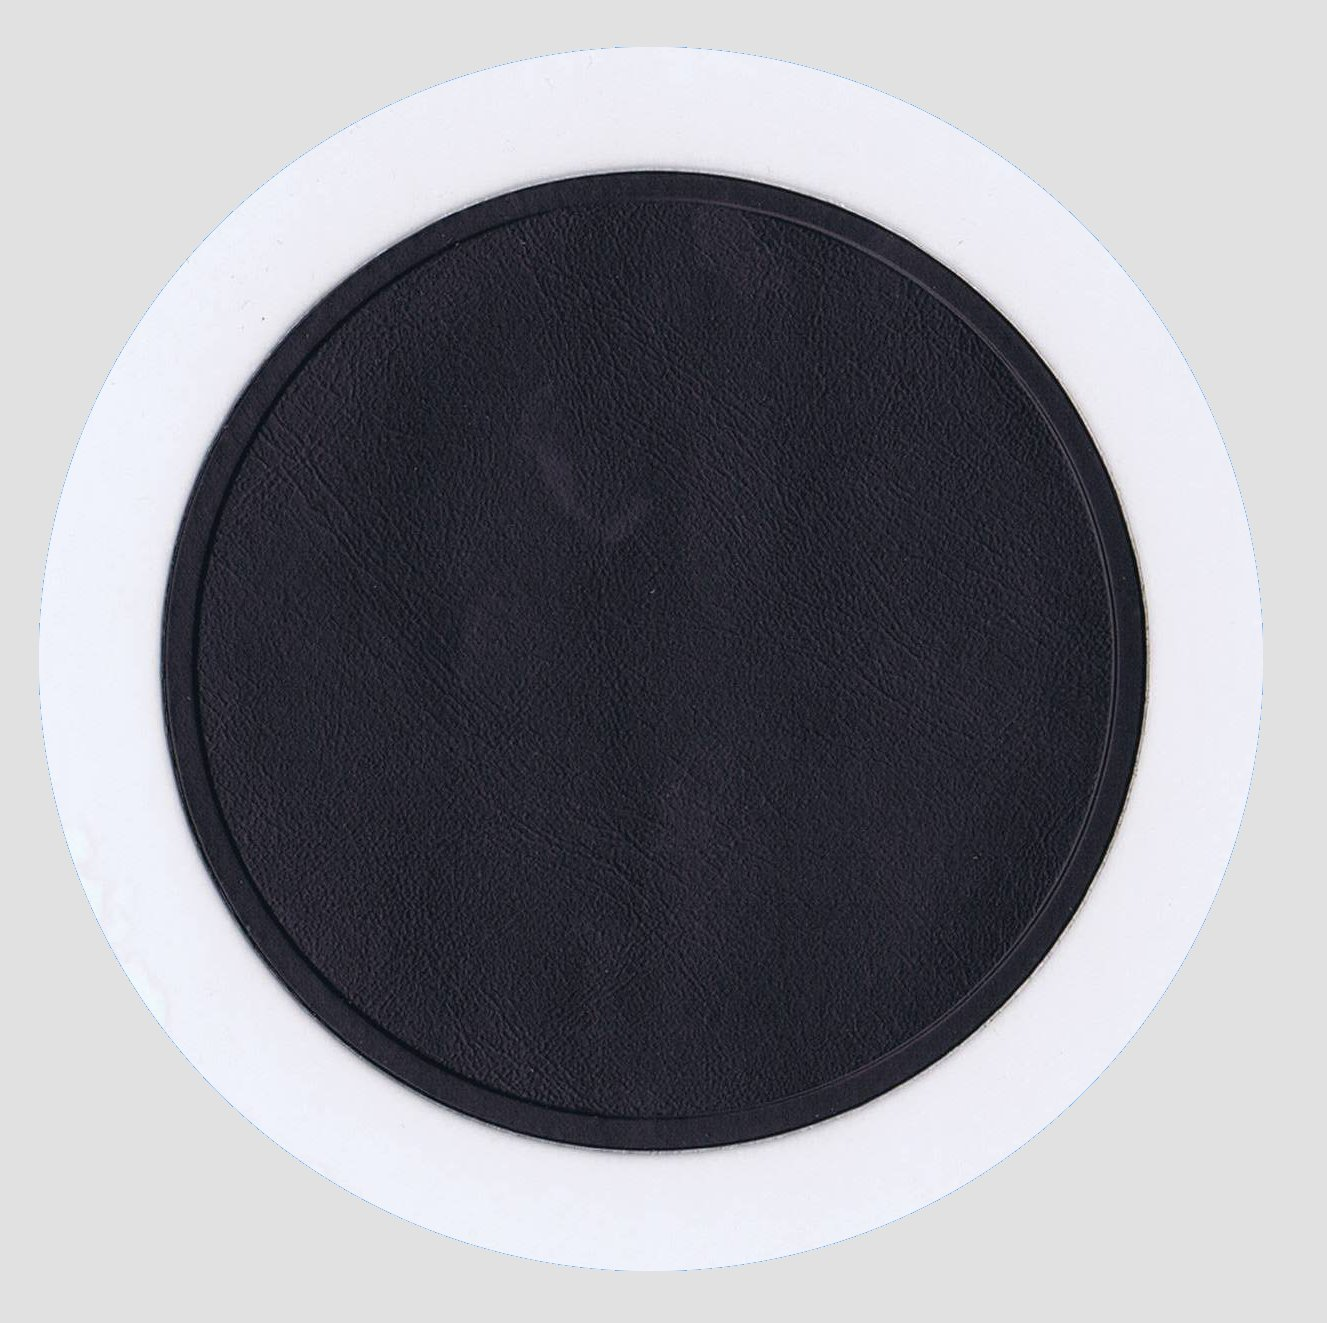 50 X Black Tax Disc Holders Permit Holders - Made in the UK